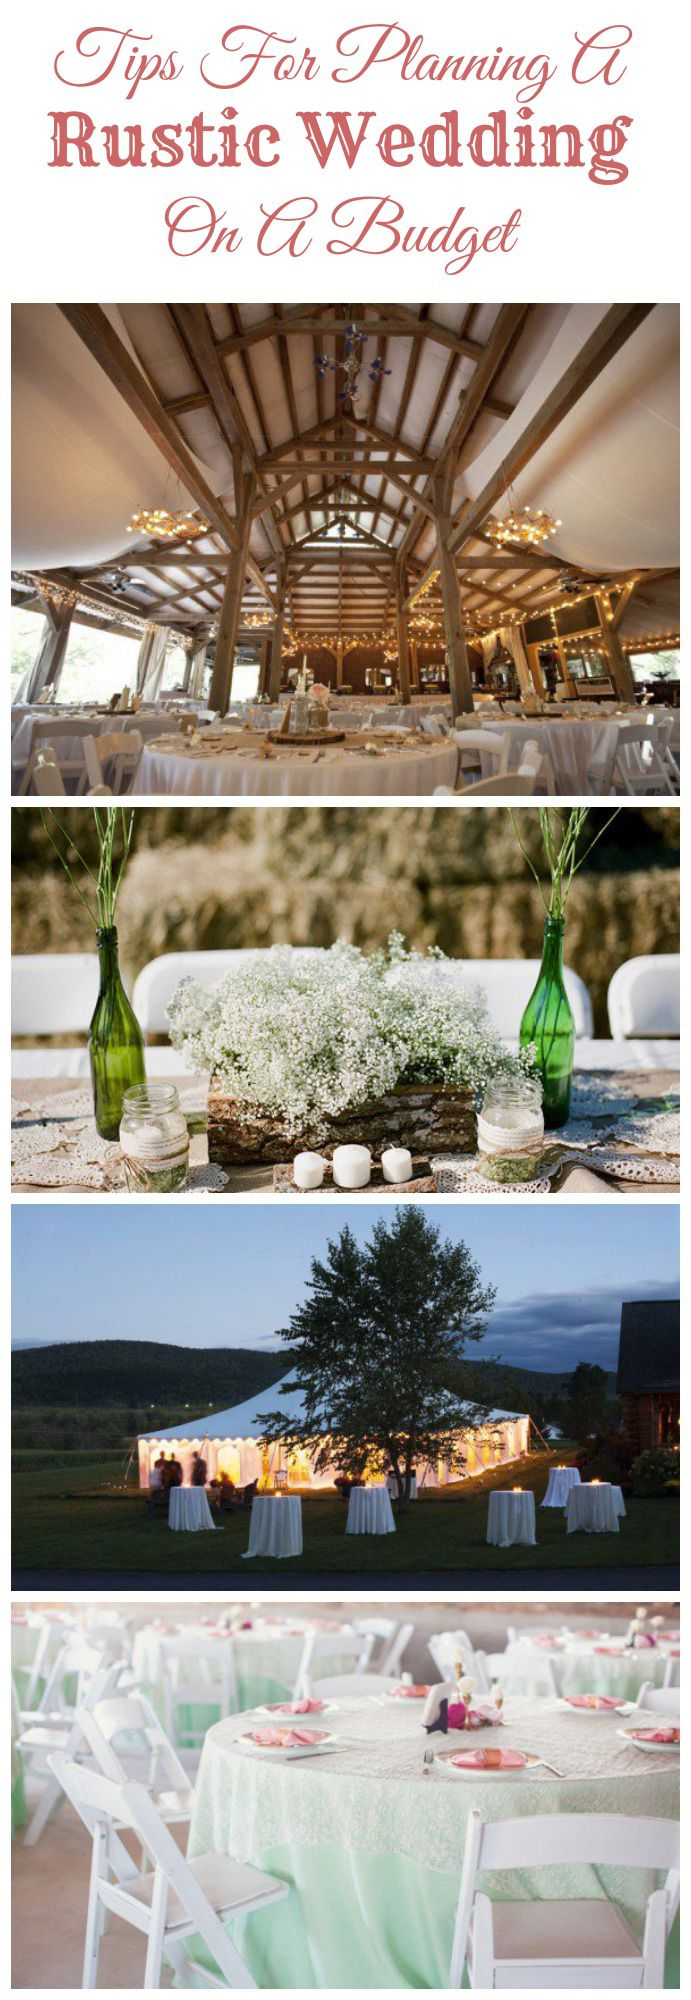 Tips For Planning A Rustic Wedding On A Budget Rustic Wedding Chic